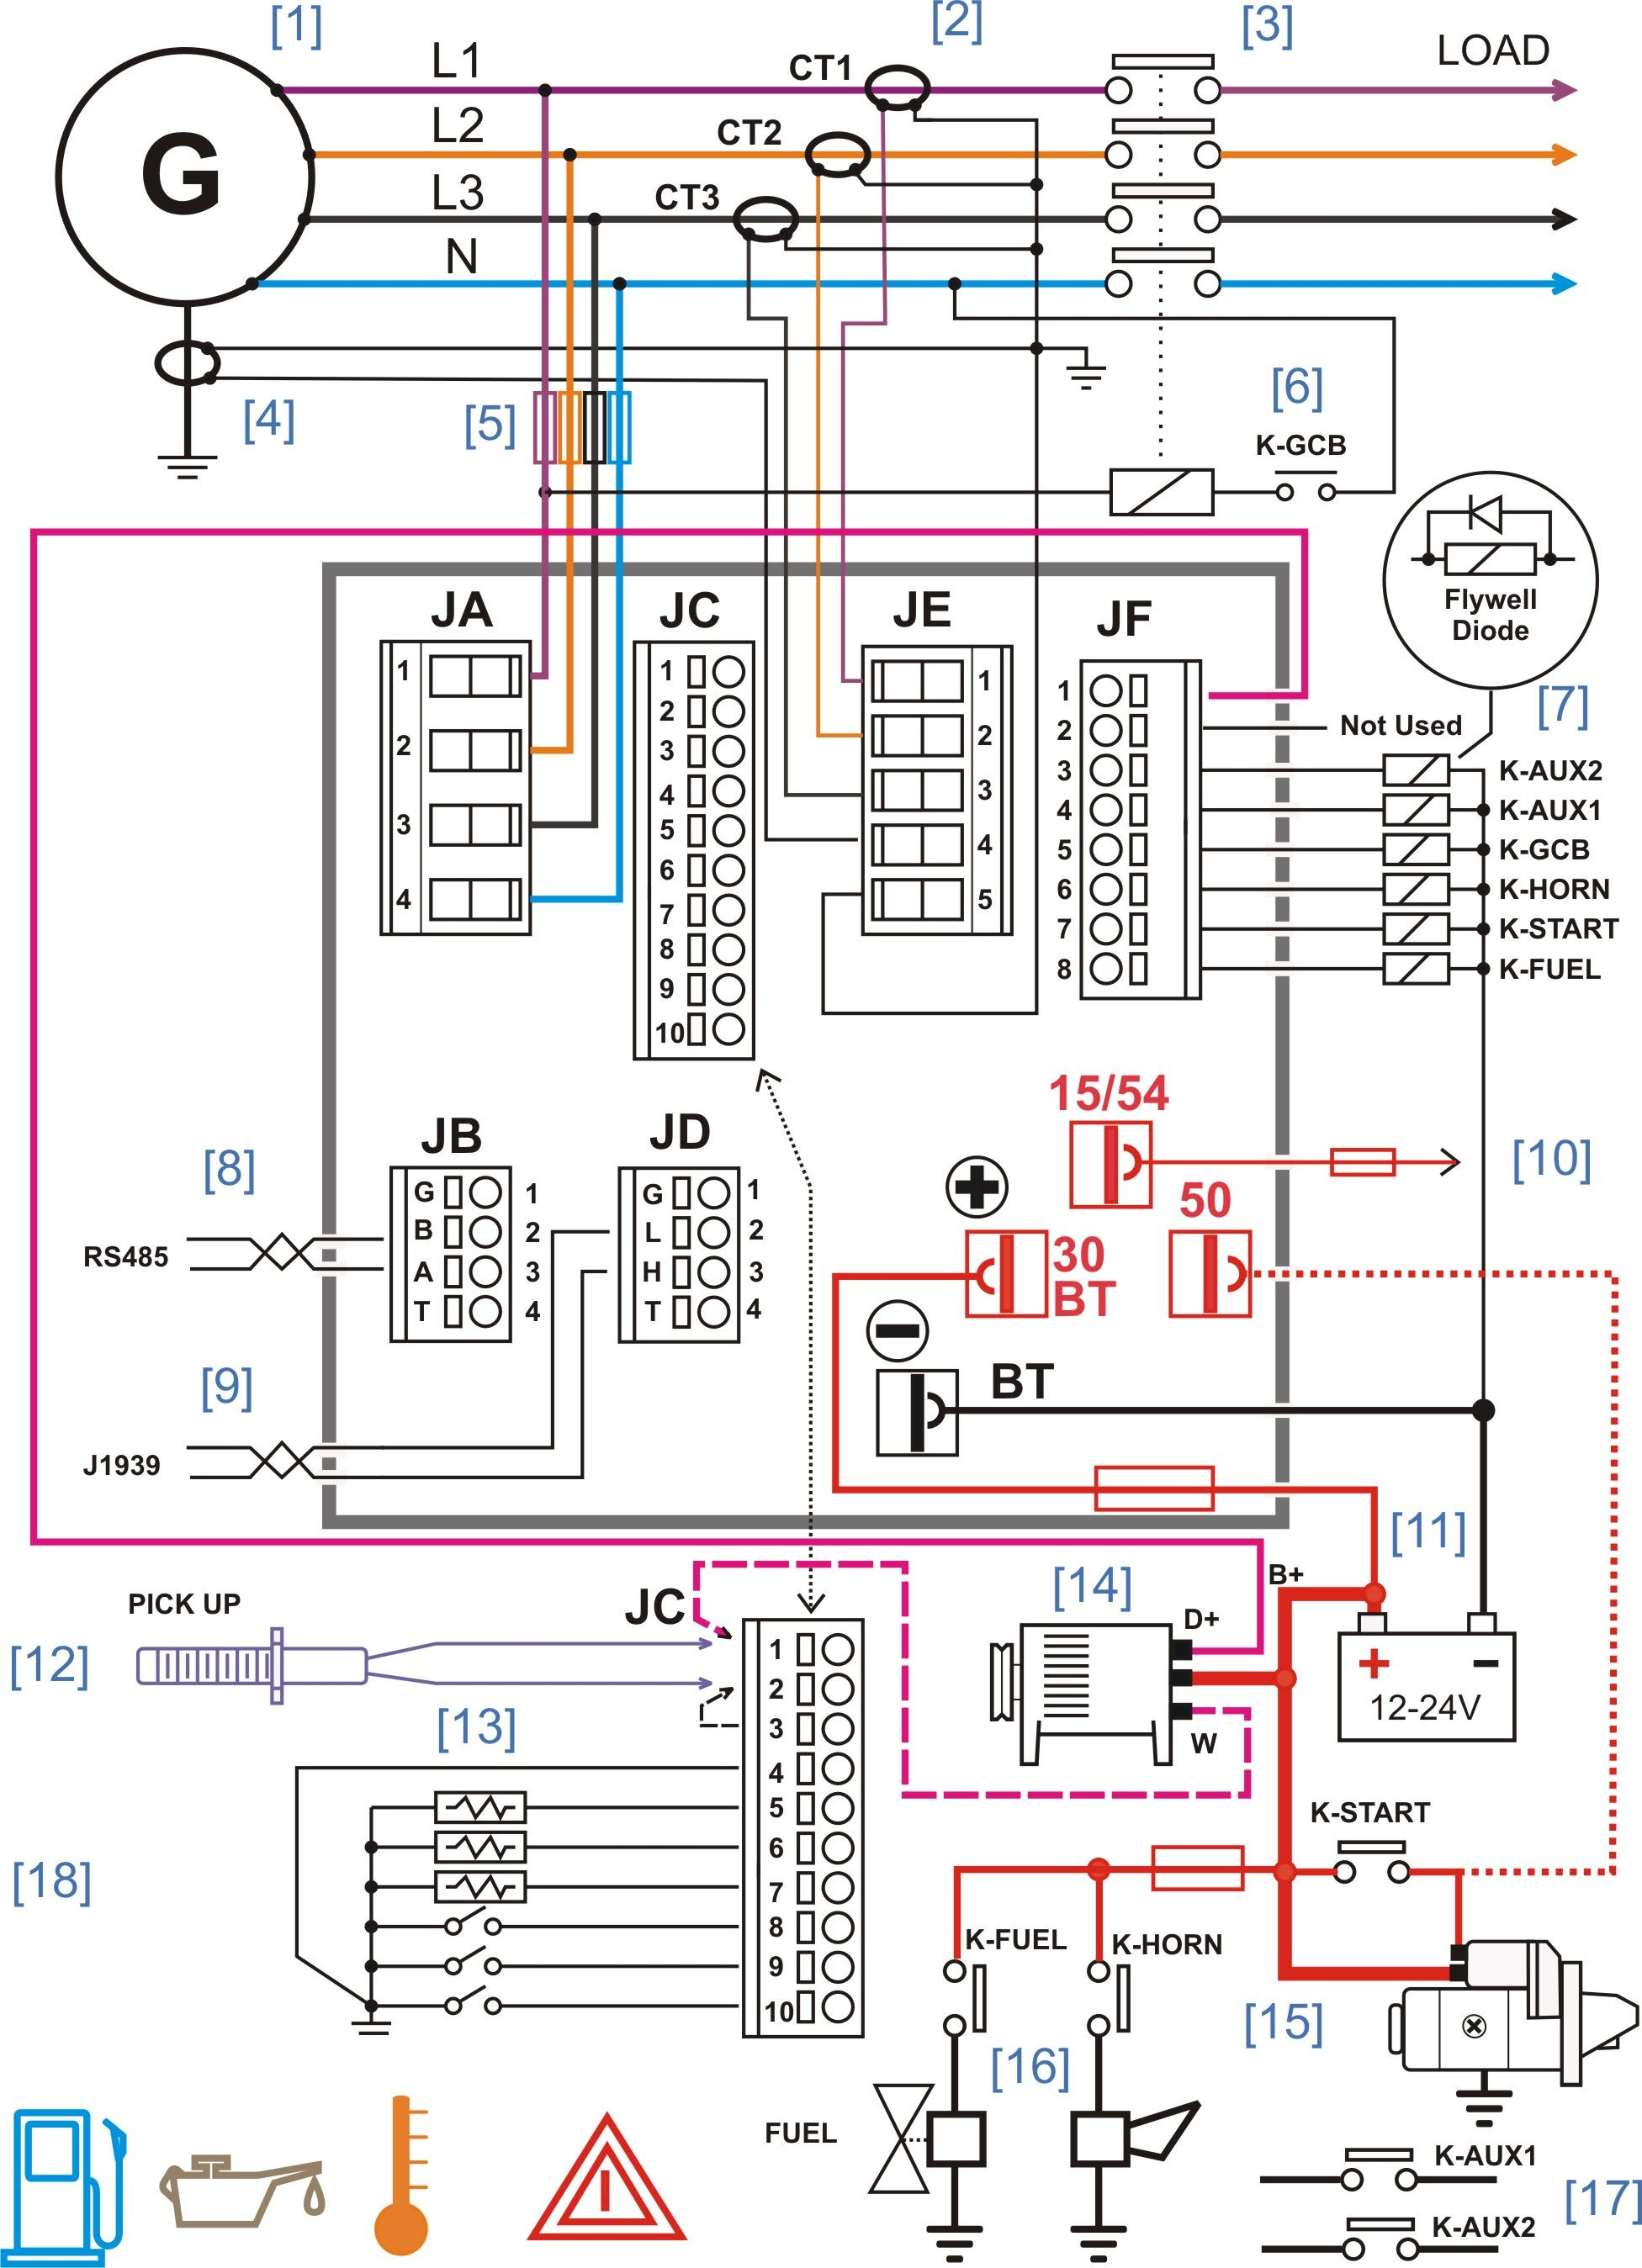 electrical panel board wiring diagram pdf fresh 41 awesome circuit breaker theory pdf [ 1952 x 2697 Pixel ]